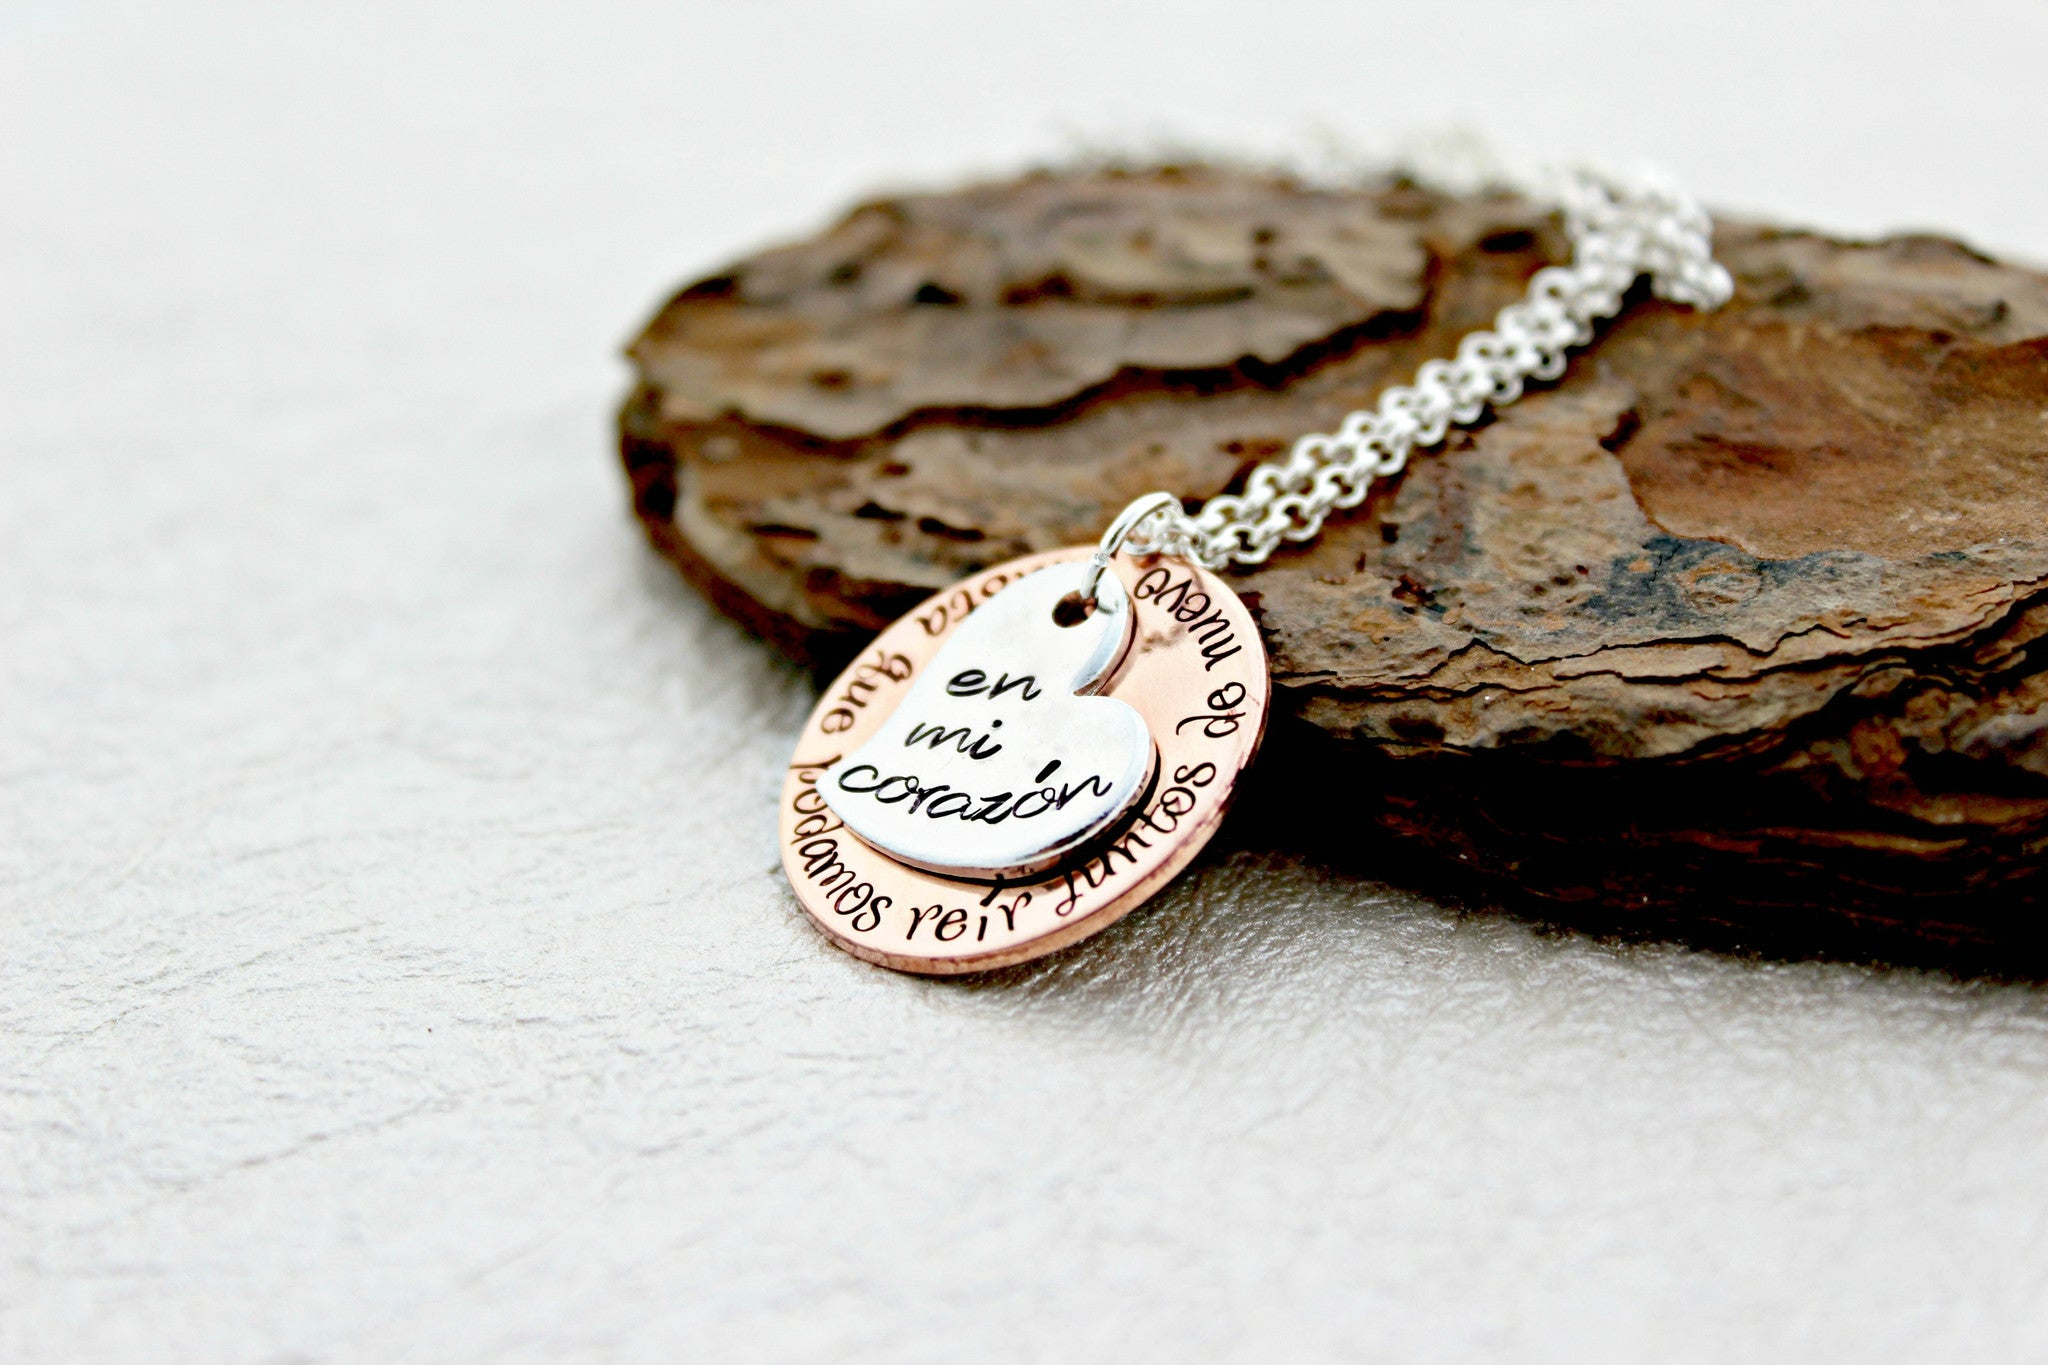 mens necklace and jewelry sports funeral date products penny memorial necklaces name womens